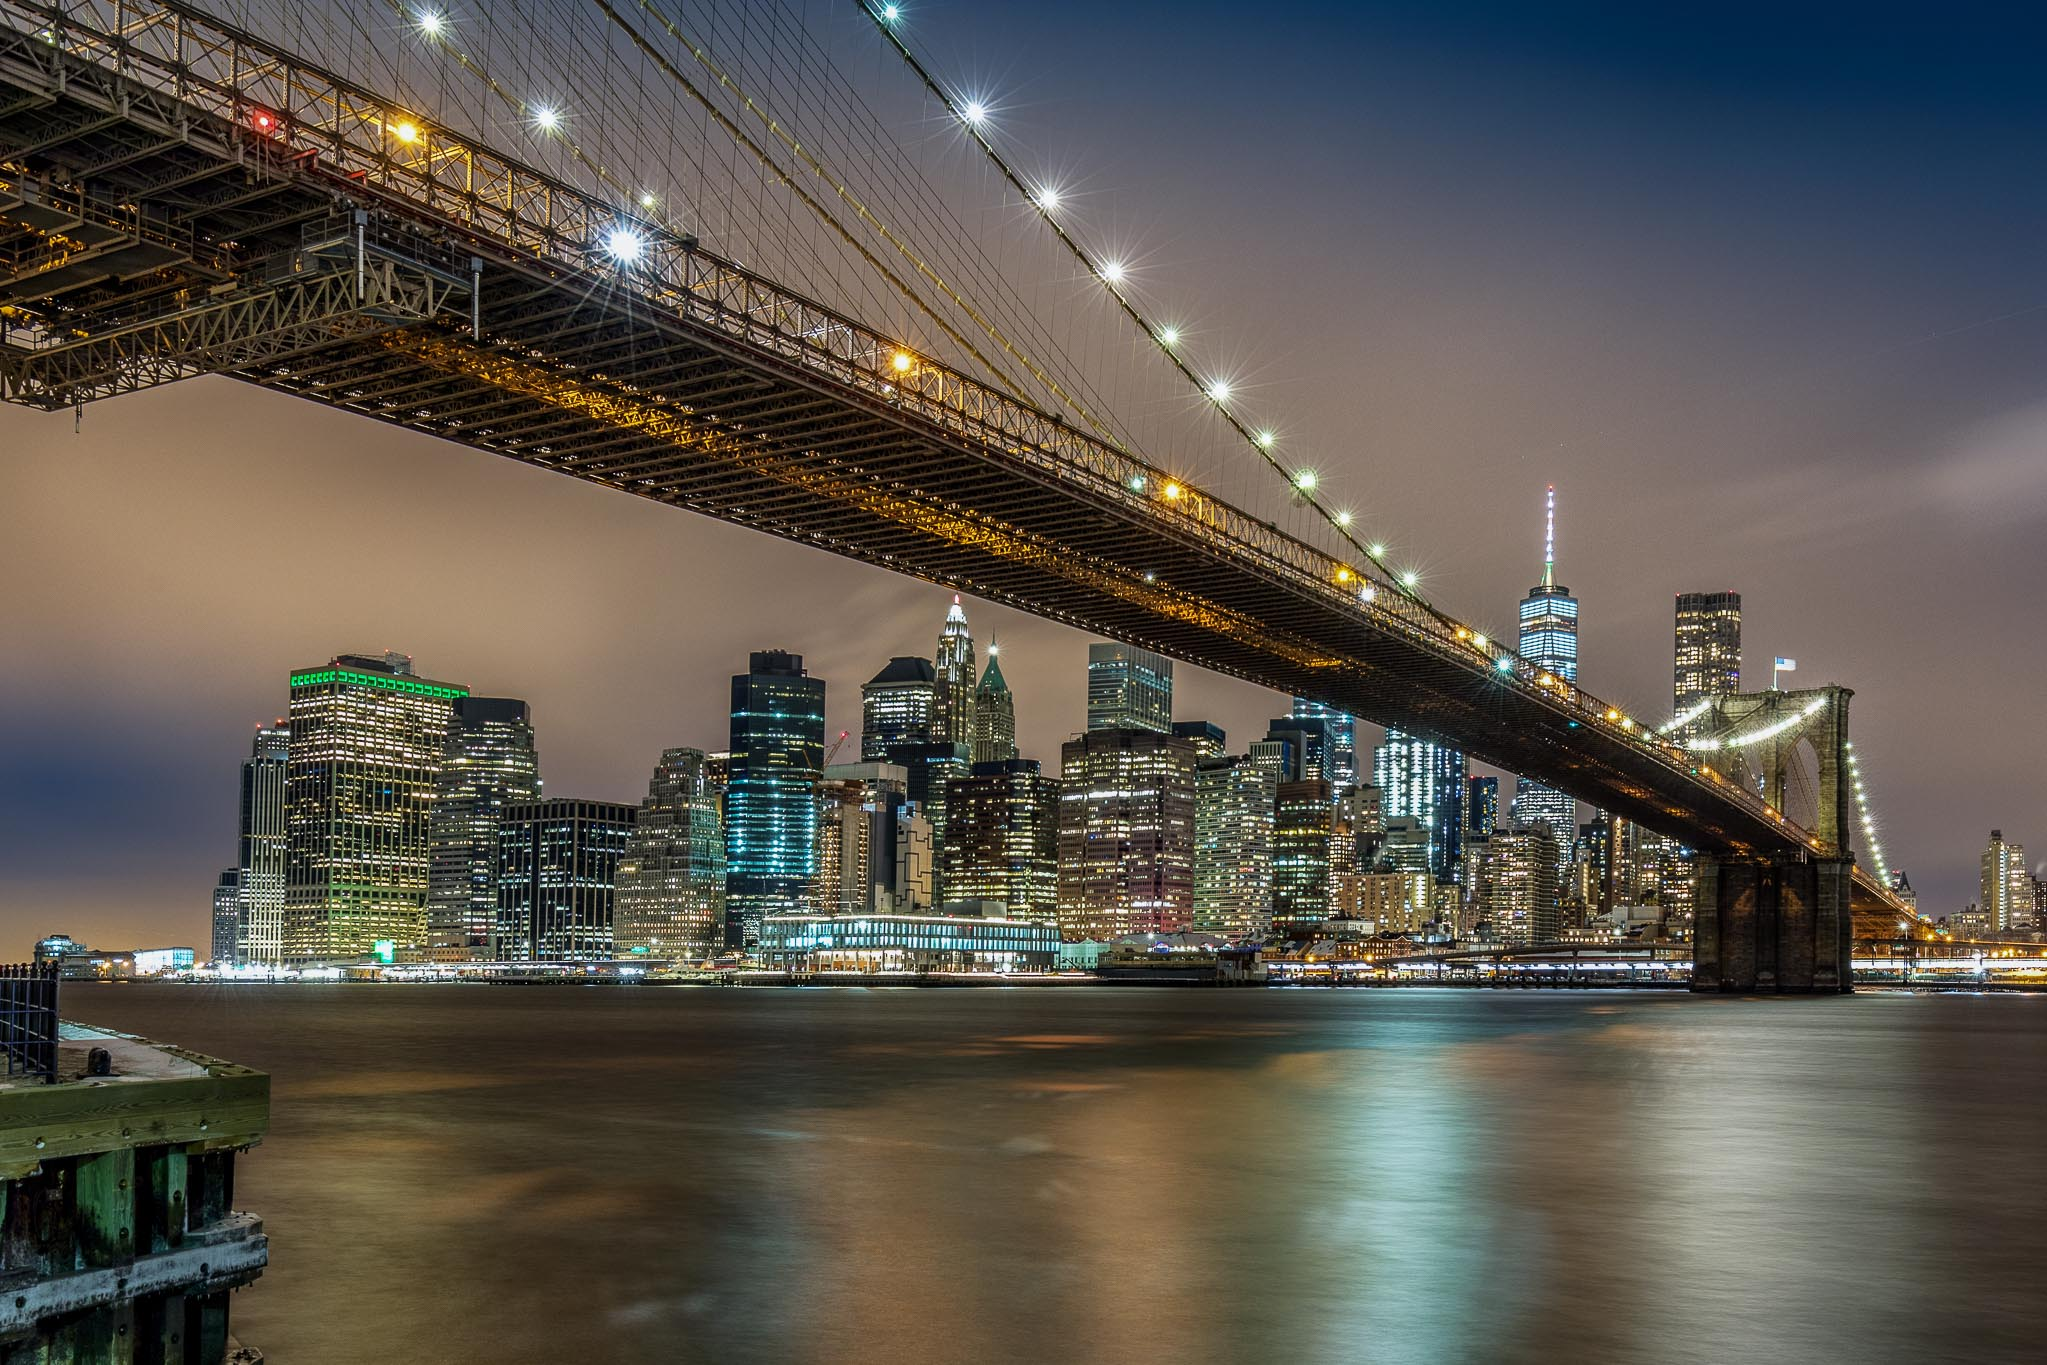 Brooklyn Bridge at Night, fotografiert vom Brooklyn Bridge Park aus, Fotoreise New York